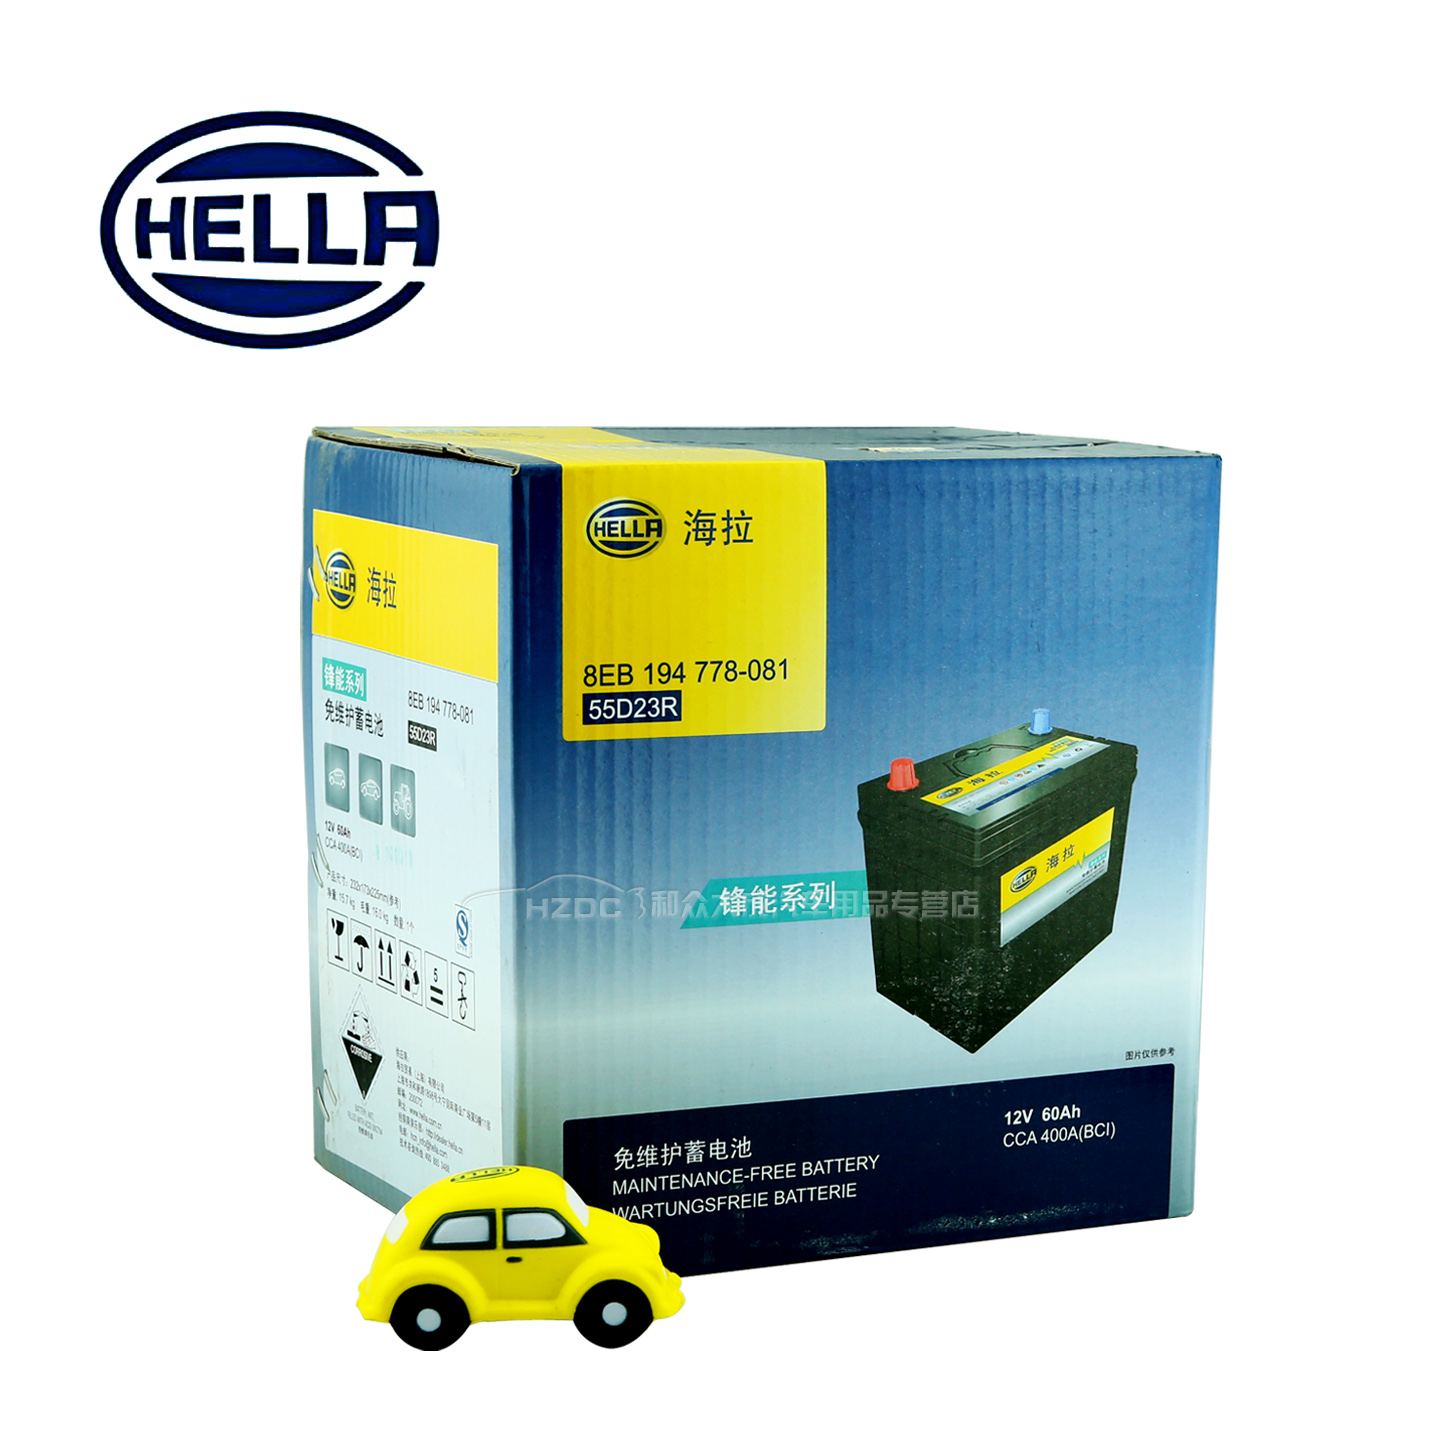 Hella hella front can series battery maintenance-free batteries 55d23r 081 ssangyong wooden cable paladin